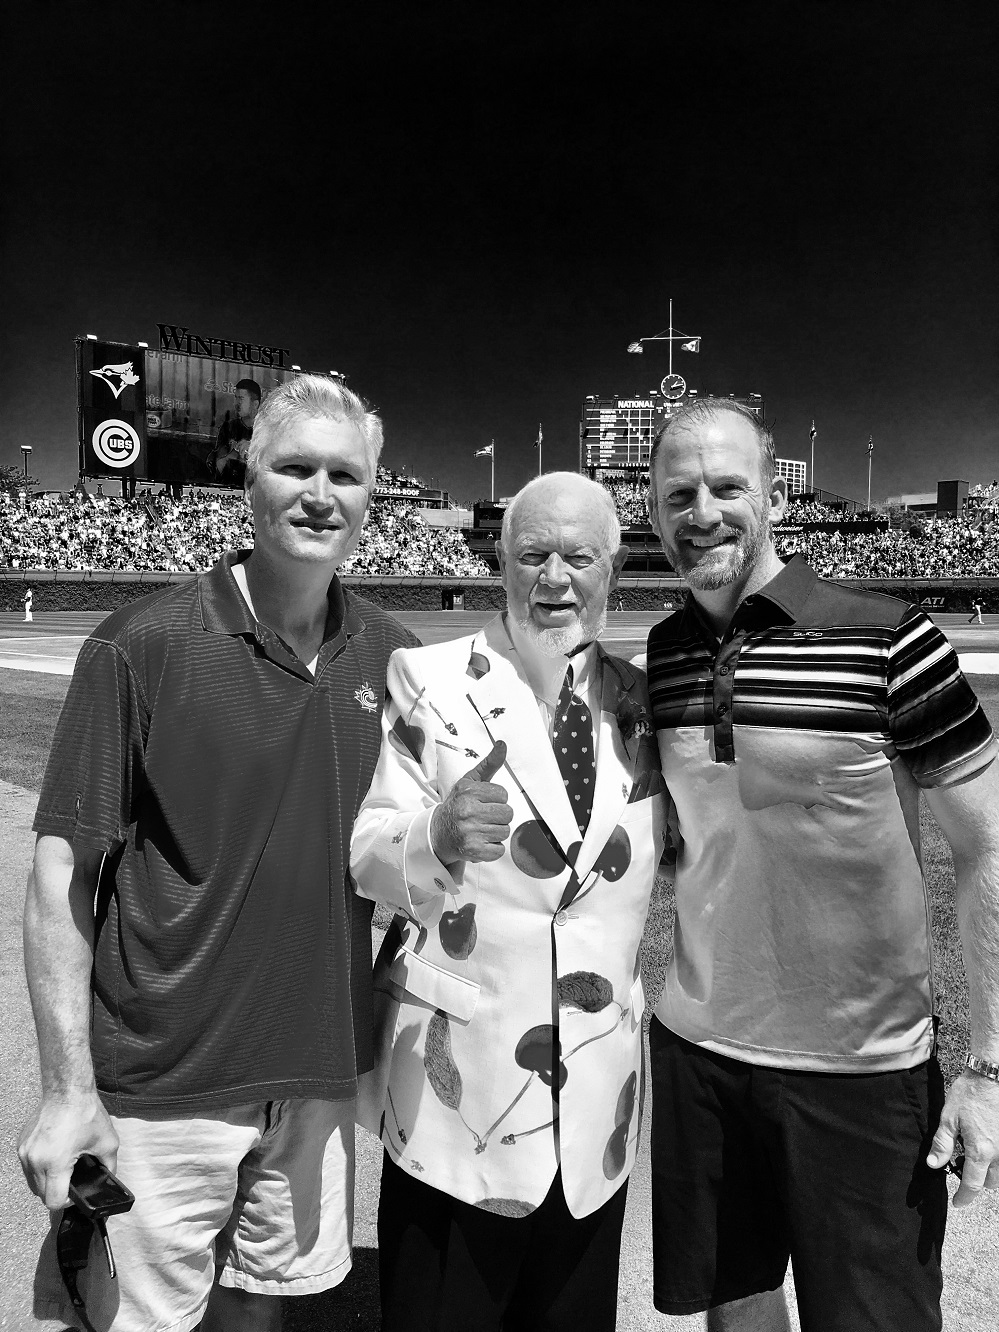 Greg O'Halloran (Mississauga, Ont.), Donald S. Cherry (Kingston, Ont.) and Ryan Dempster (Gibsons, BC) at Wrigley.